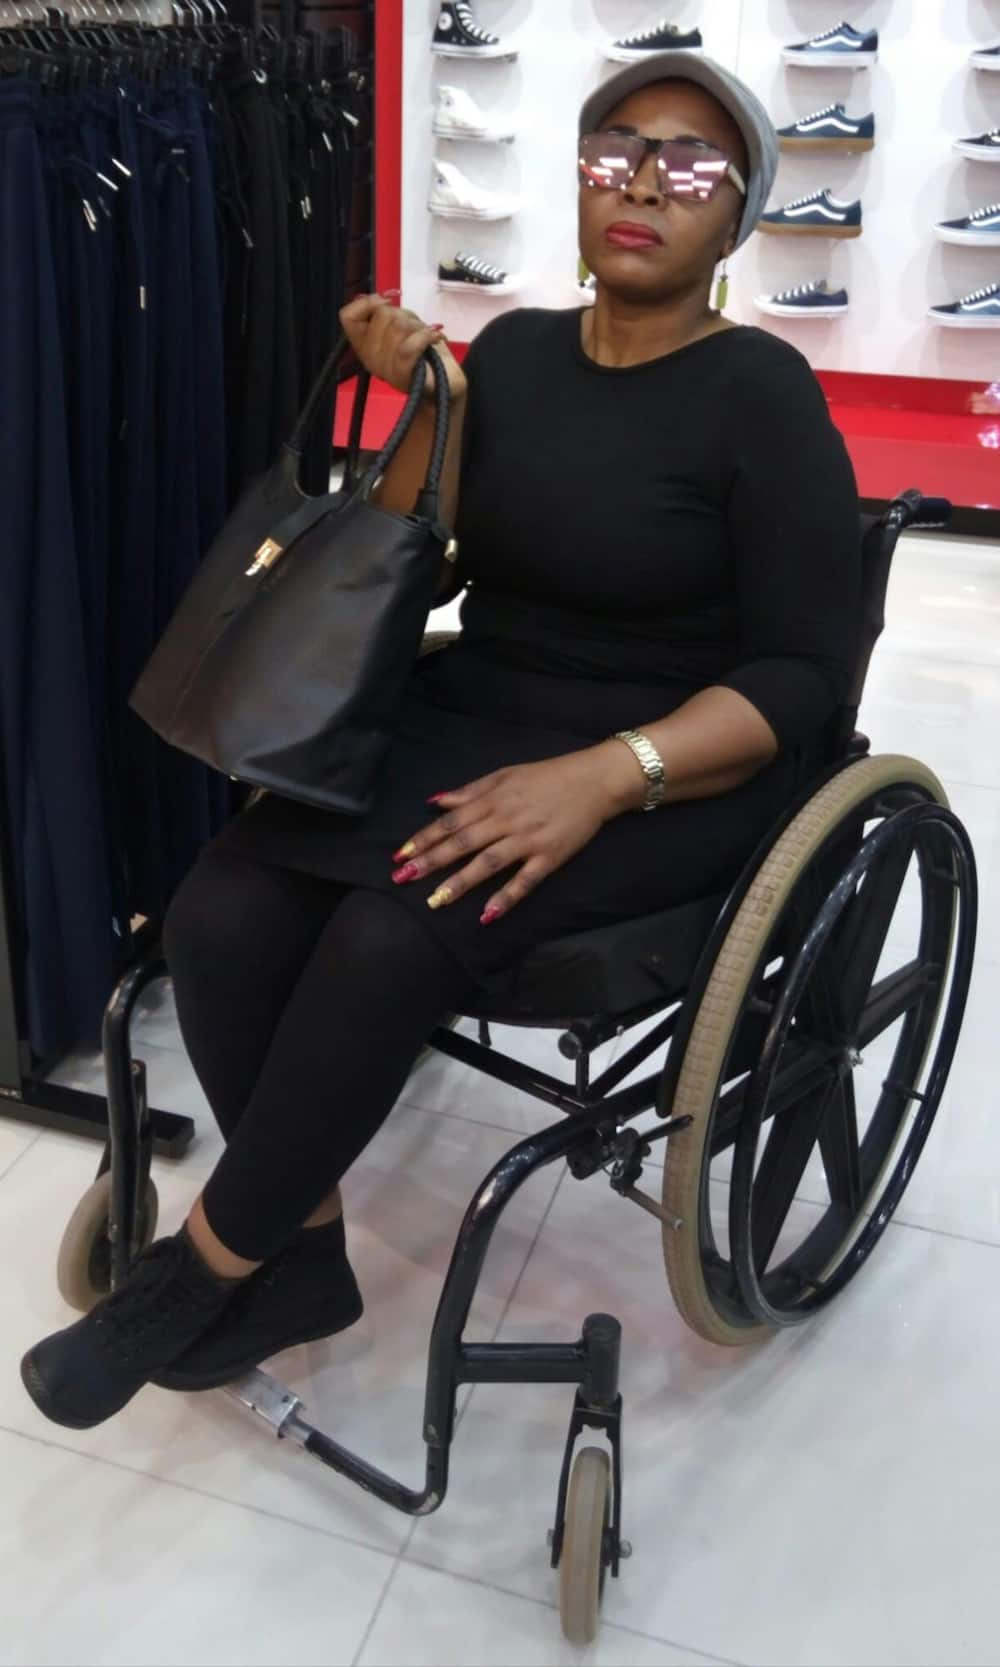 Wheelchair-bound woman post inspirational message about success